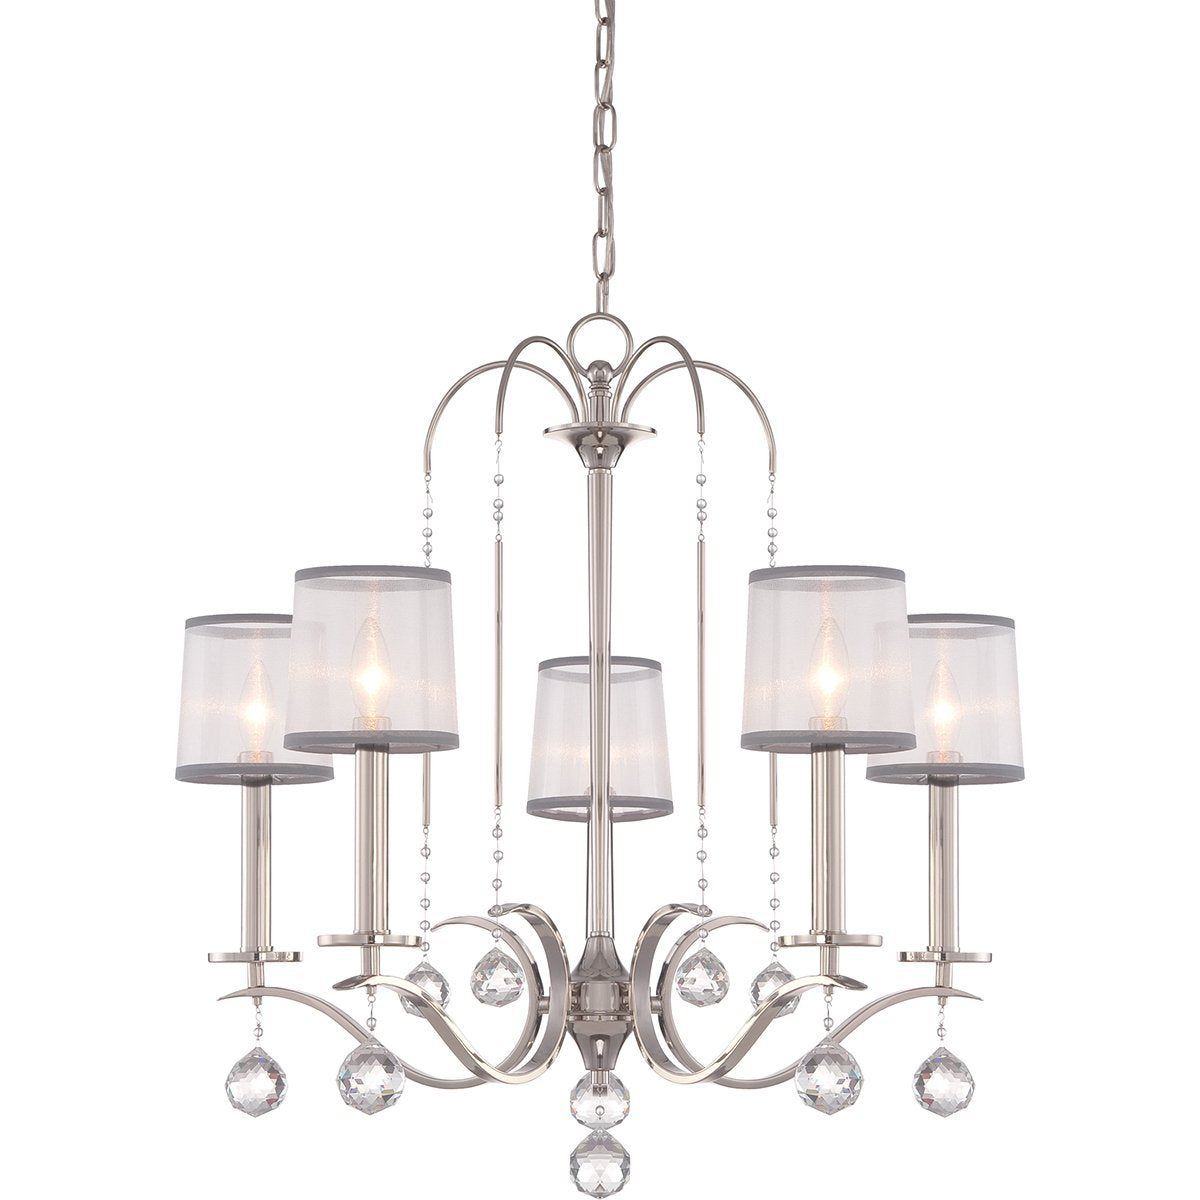 copper in lighting quoizel loading iron light finish gate satin canada wide pendant lowes ribbons contemporary premium hanging zoom chandelier